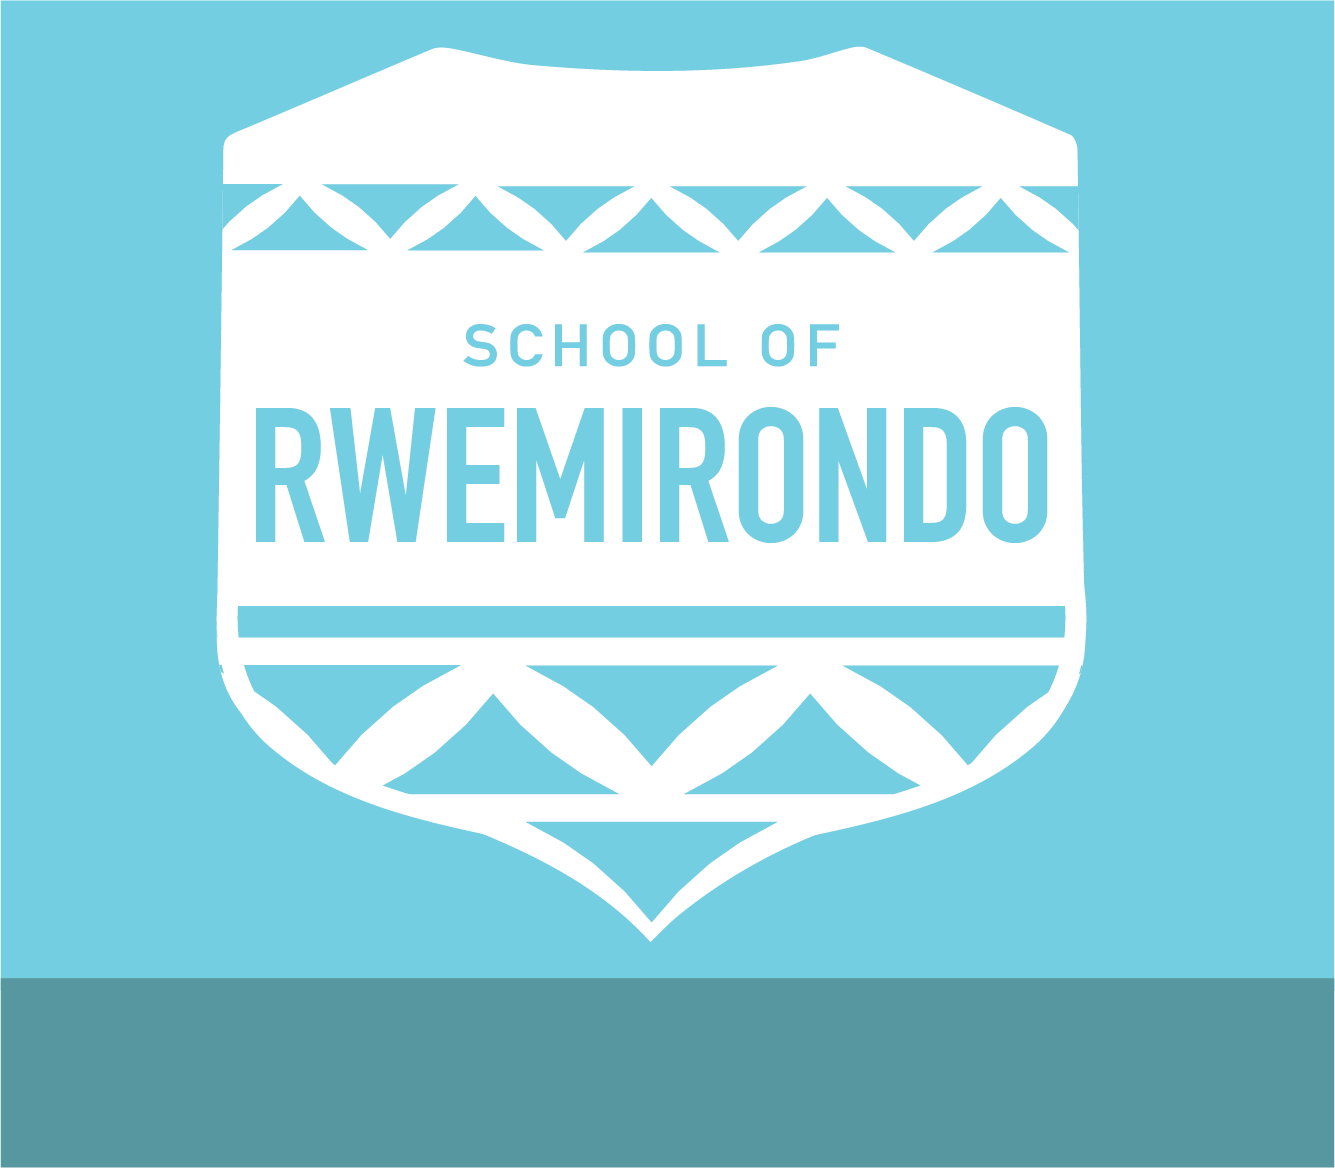 School of rwemirondo